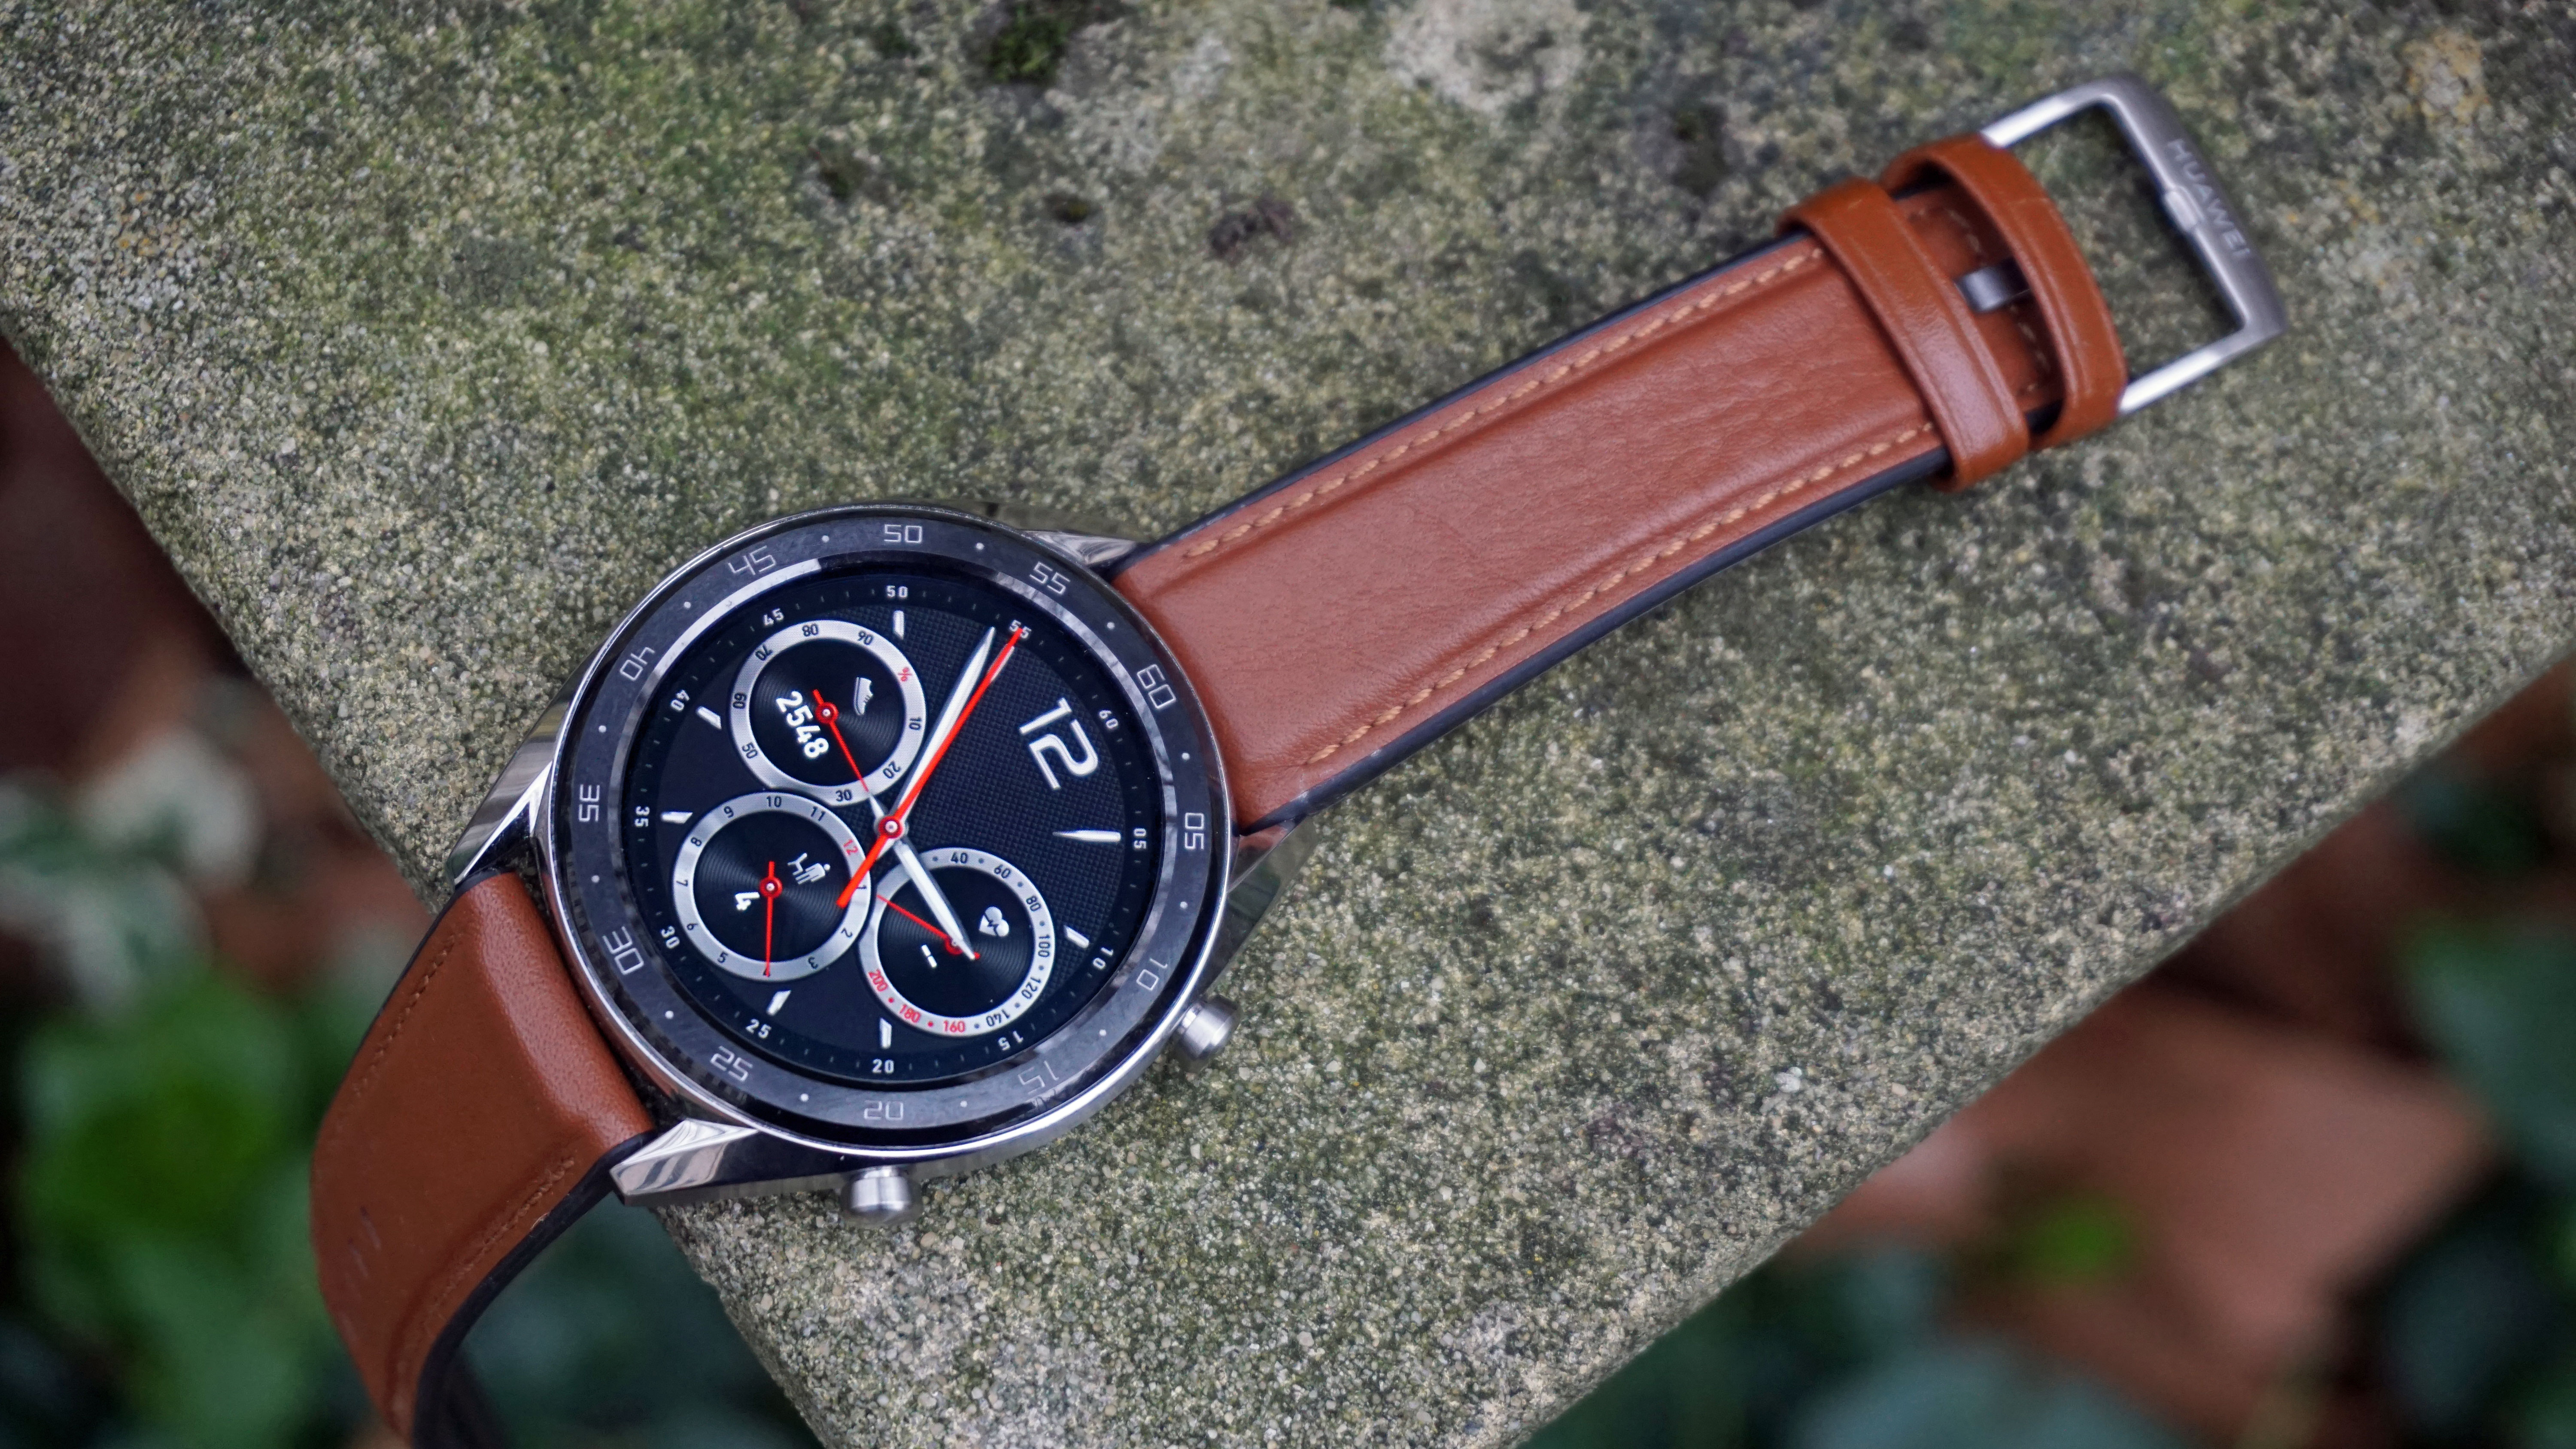 Huawei Watch GT could one day use HarmonyOS